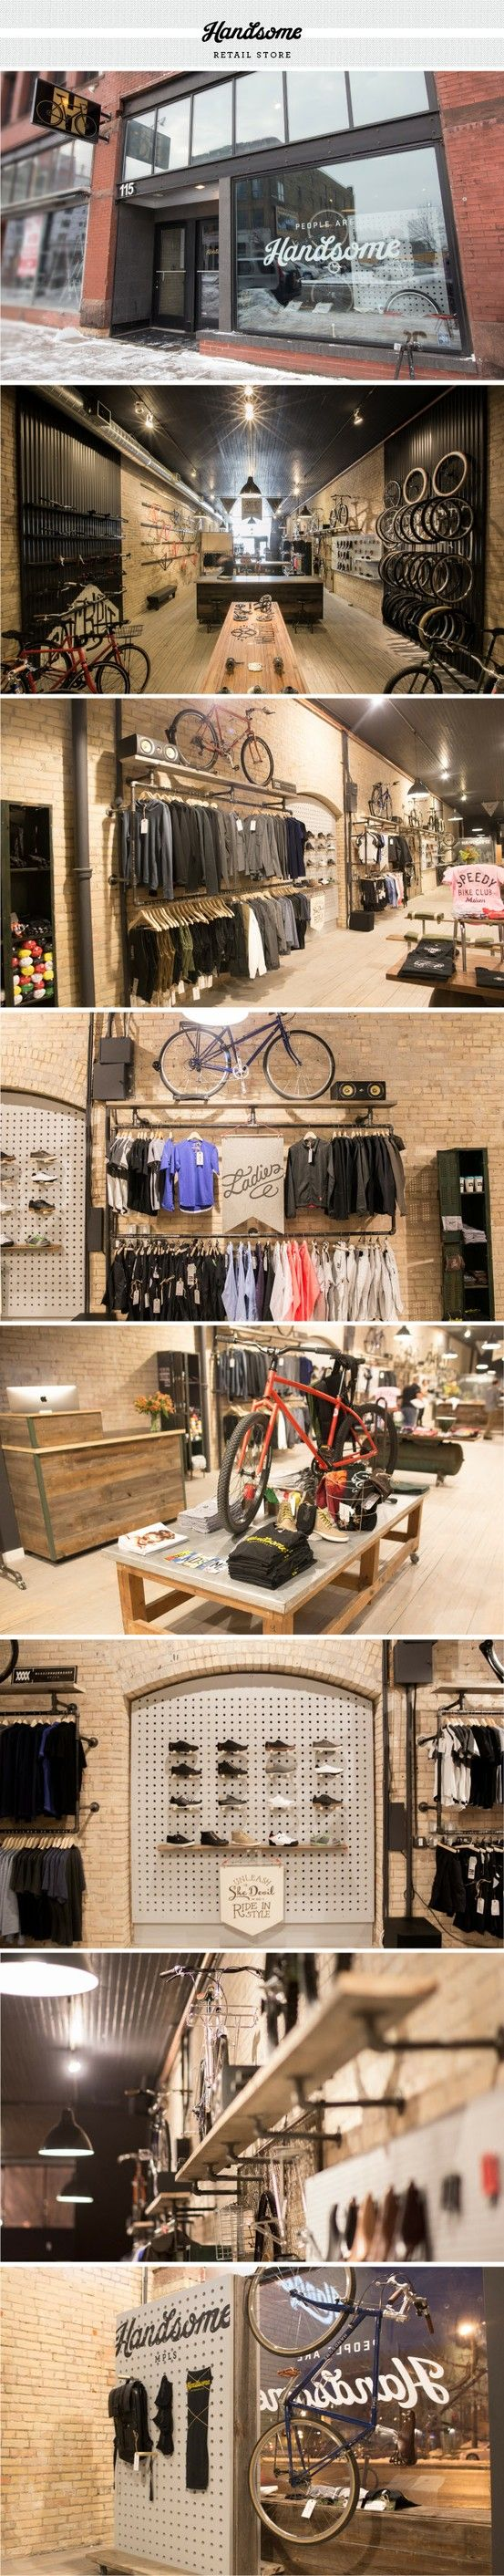 handsome cycles retail store designed by joe anderson meenal patel and marina groh - Retail Store Design Ideas